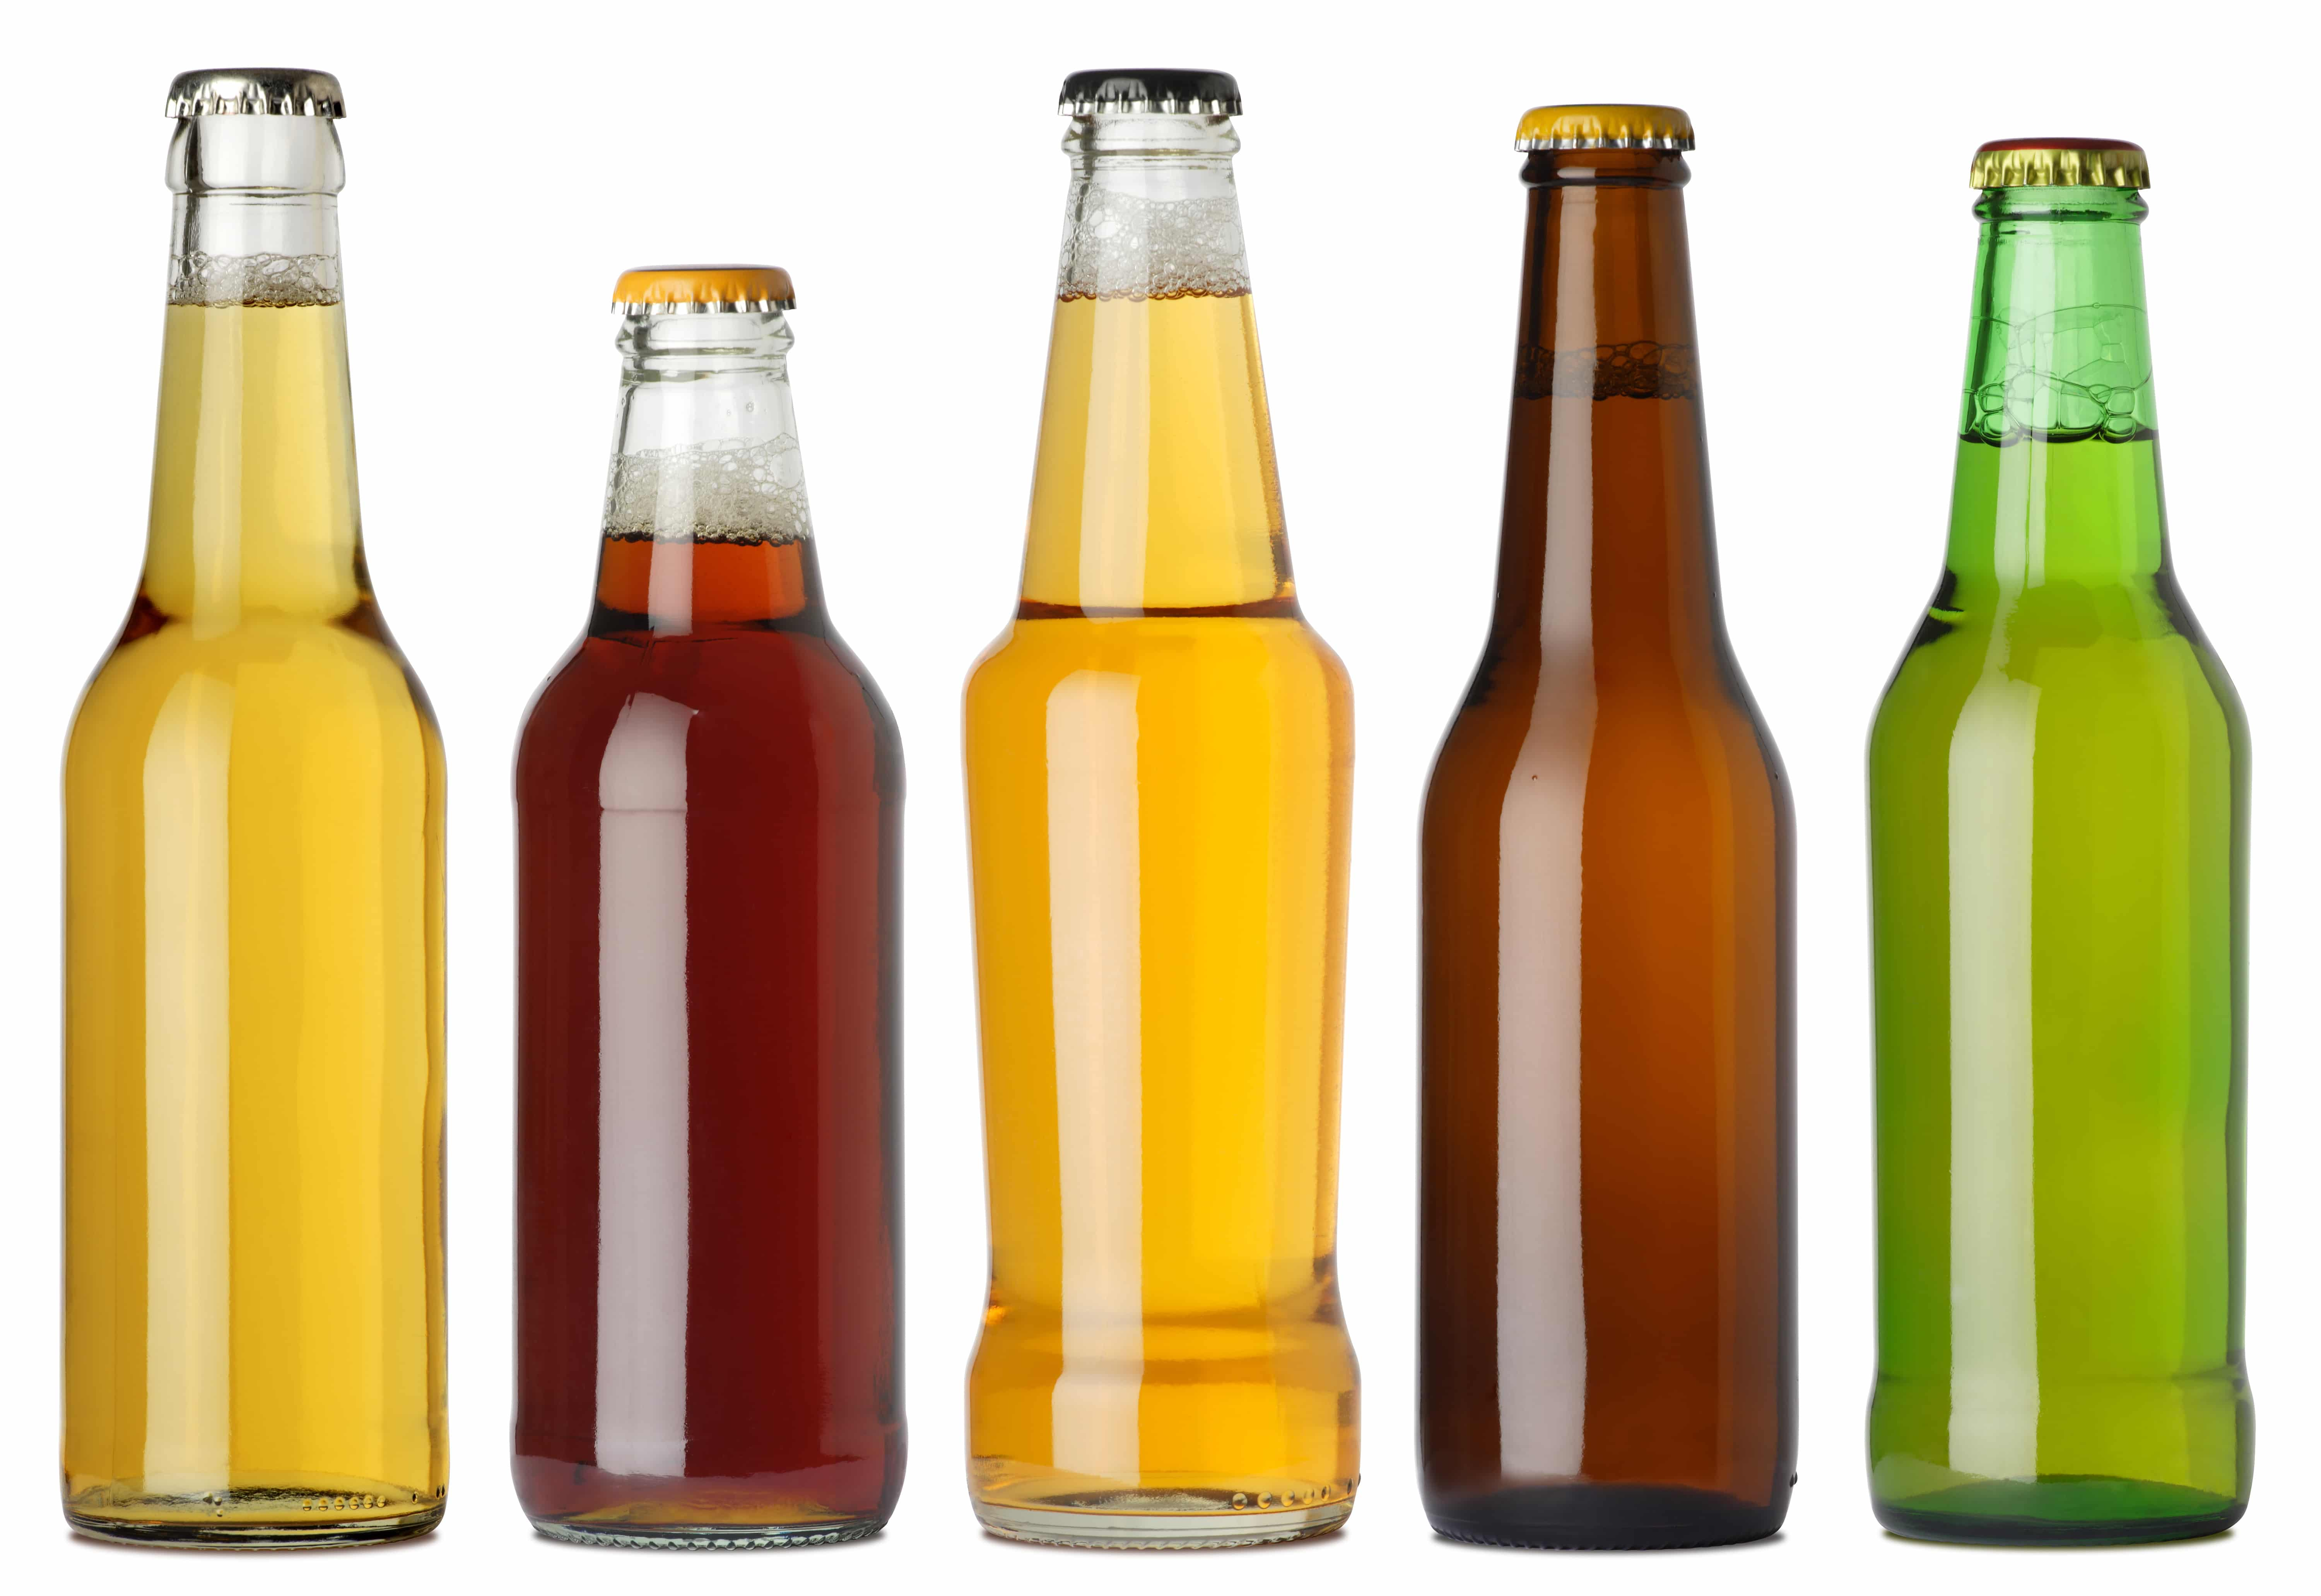 beer bottles without labels